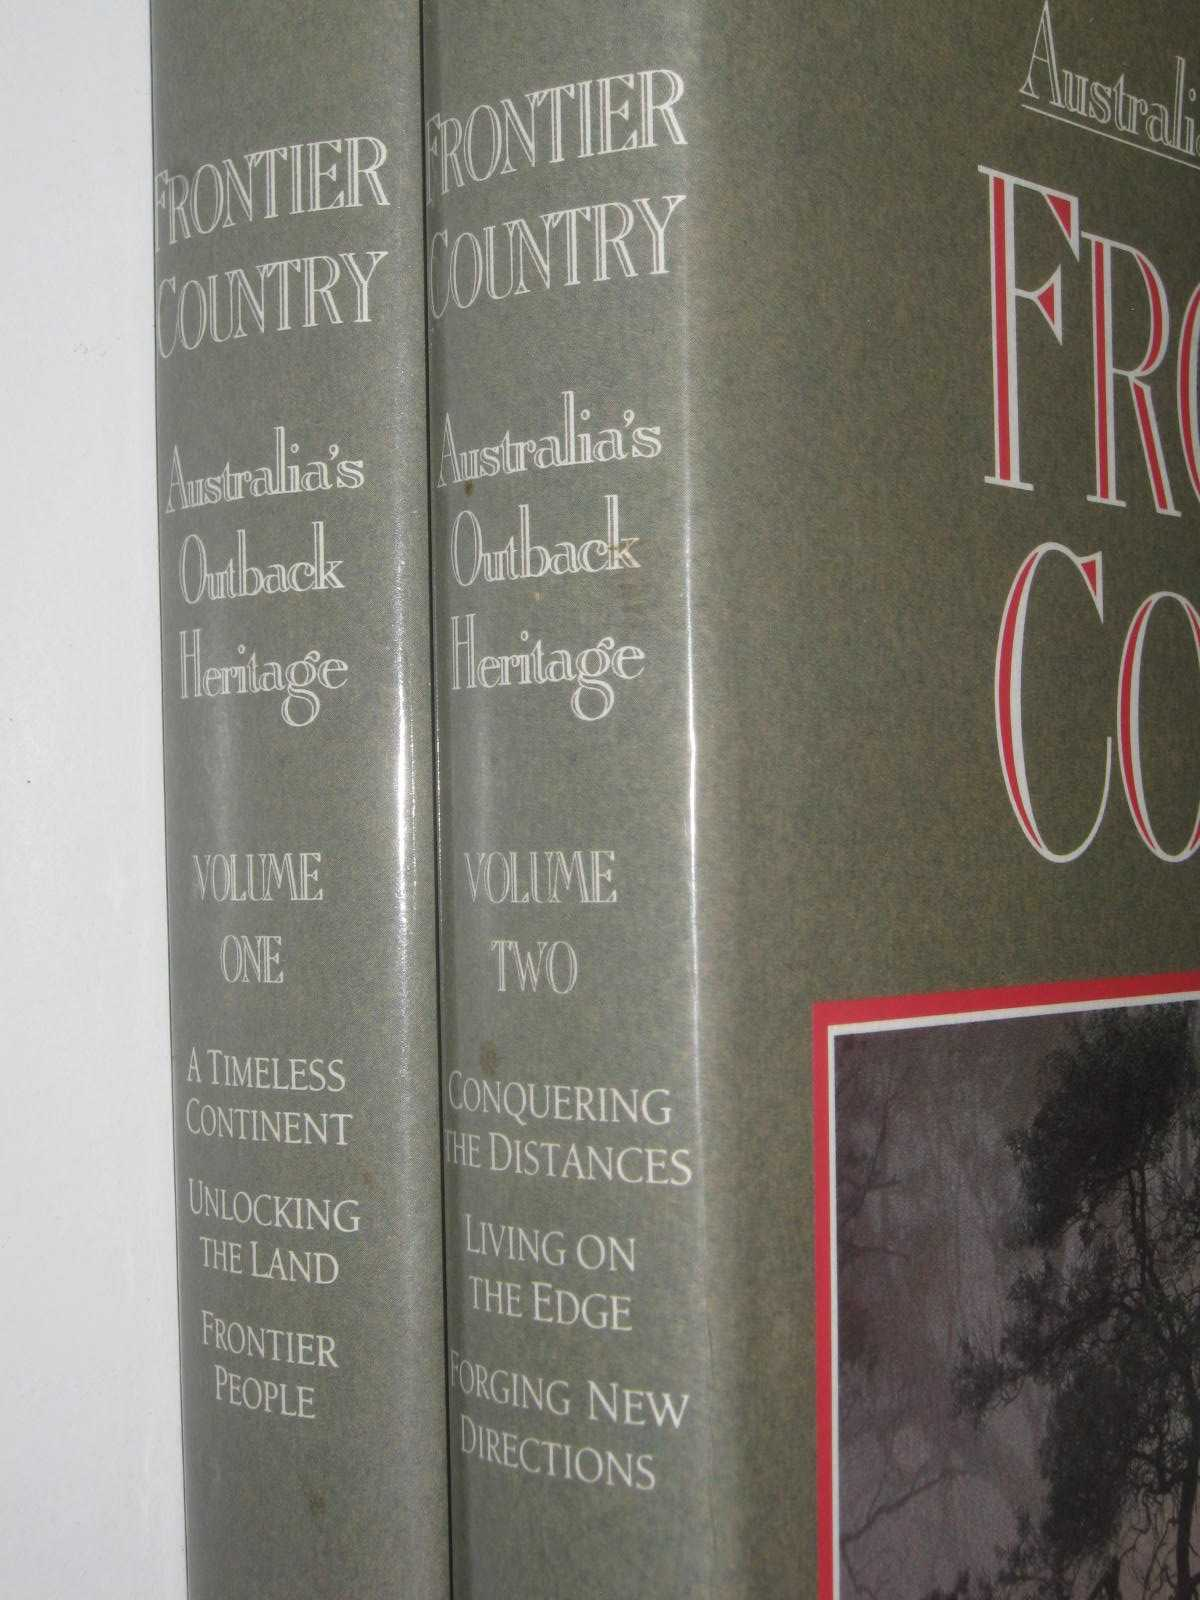 Image for Frontier Country Vol 1 & 2 : Australia's Outback Heritage